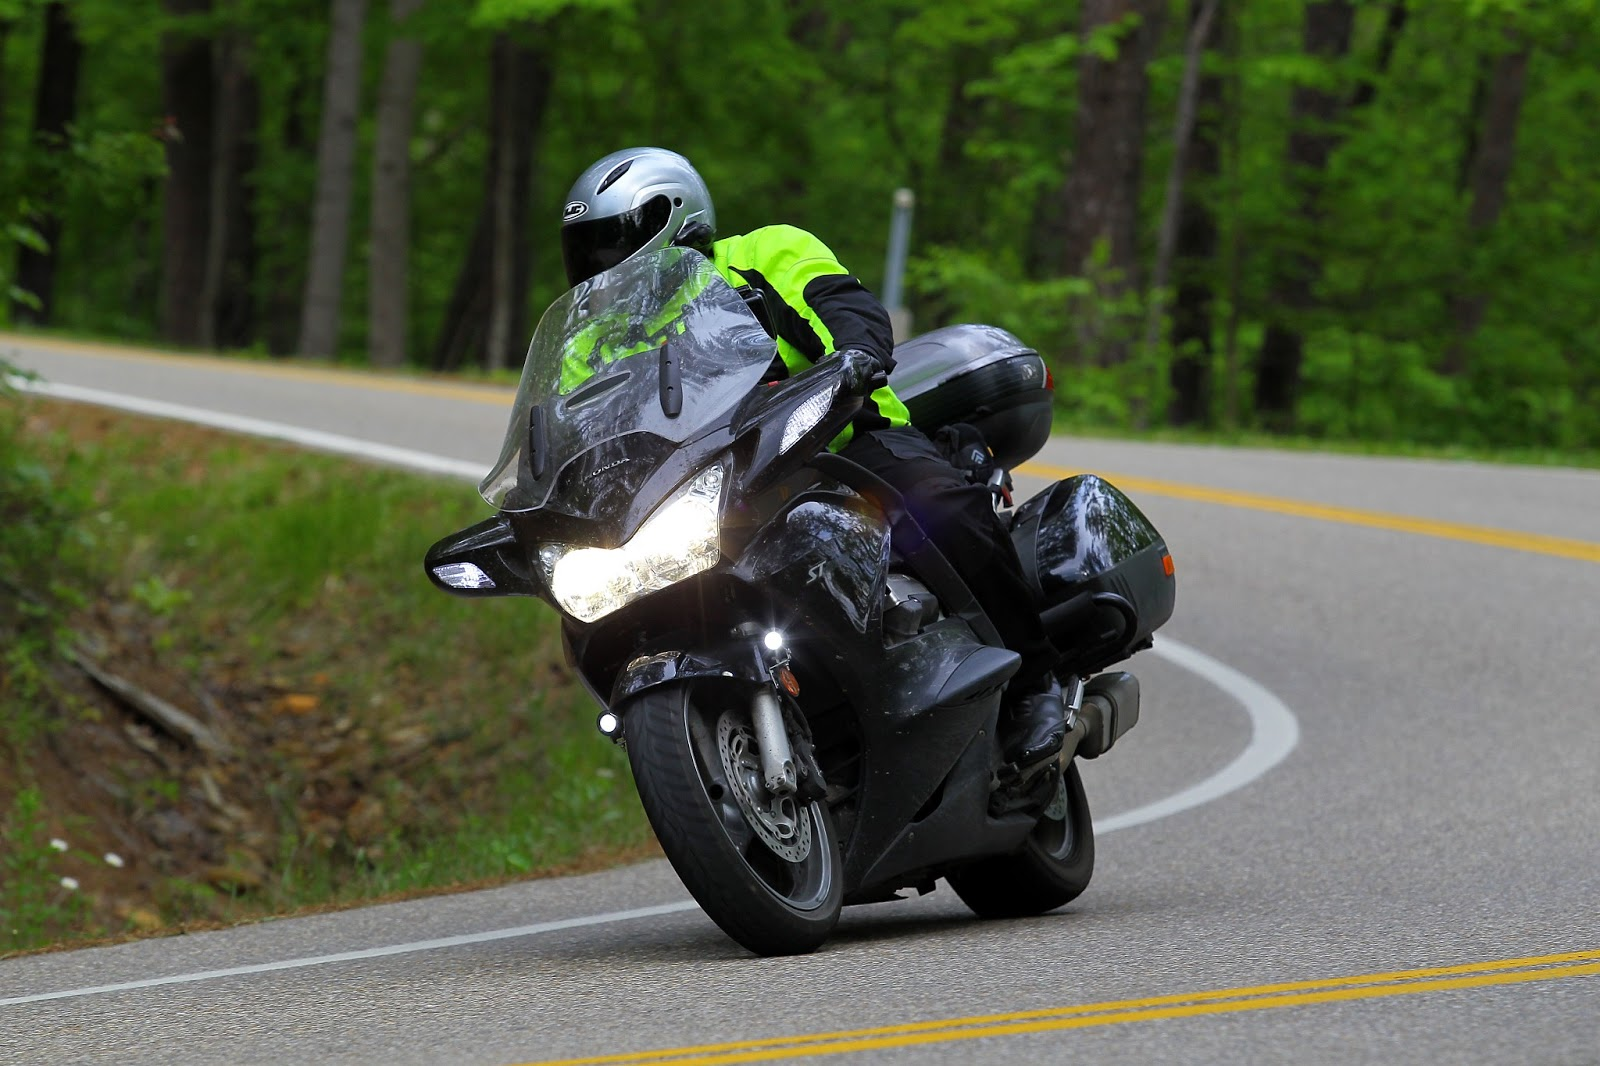 hight resolution of first introduced in 2003 and largely unchanged through 2014 honda s st1300 remains a solid if somewhat dated performer the bike is big and heavy 730